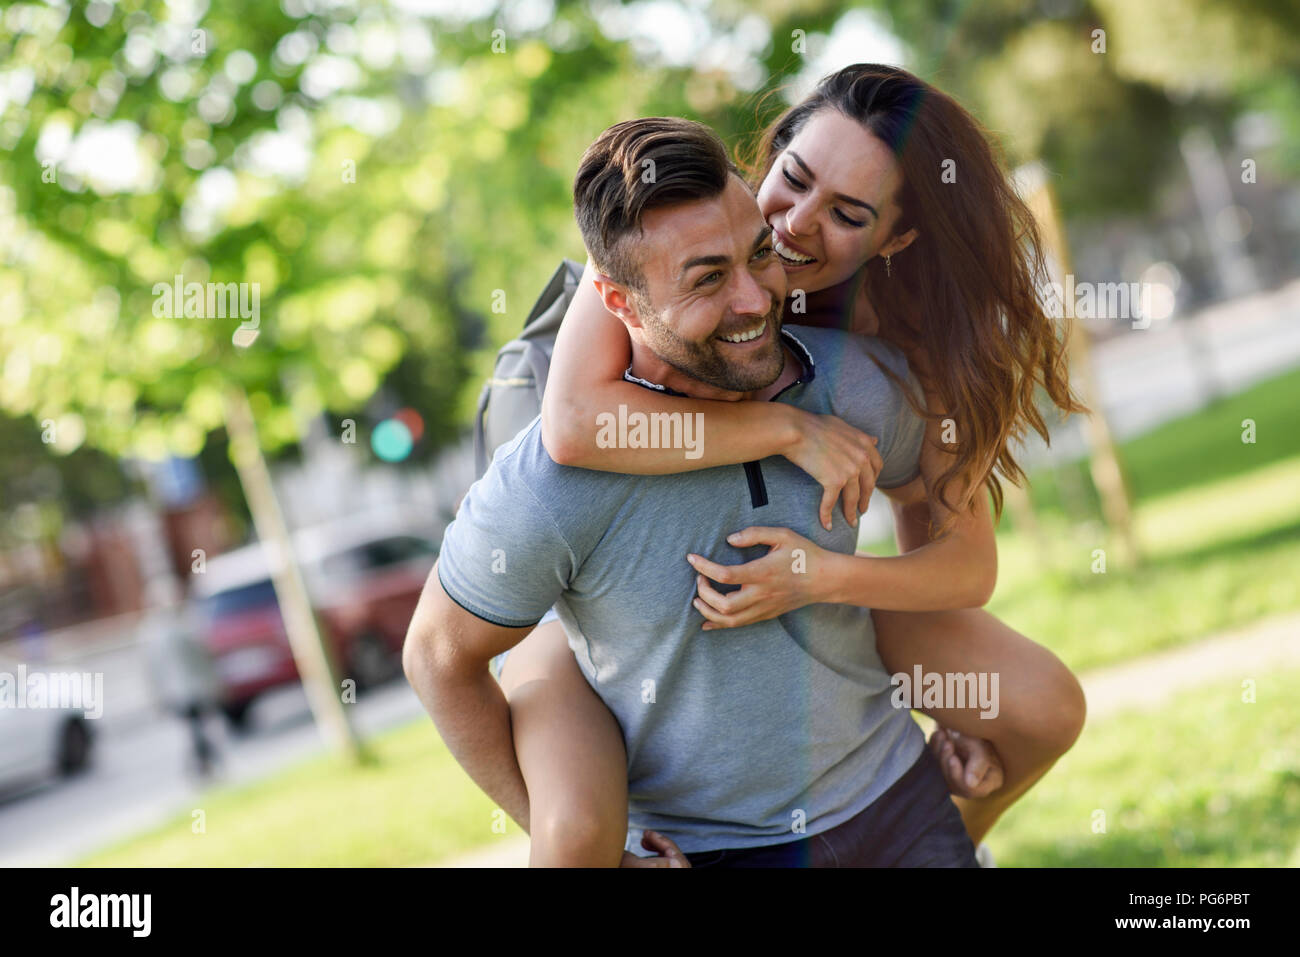 Happy man giving girlfriend a piggyback ride in park - Stock Image